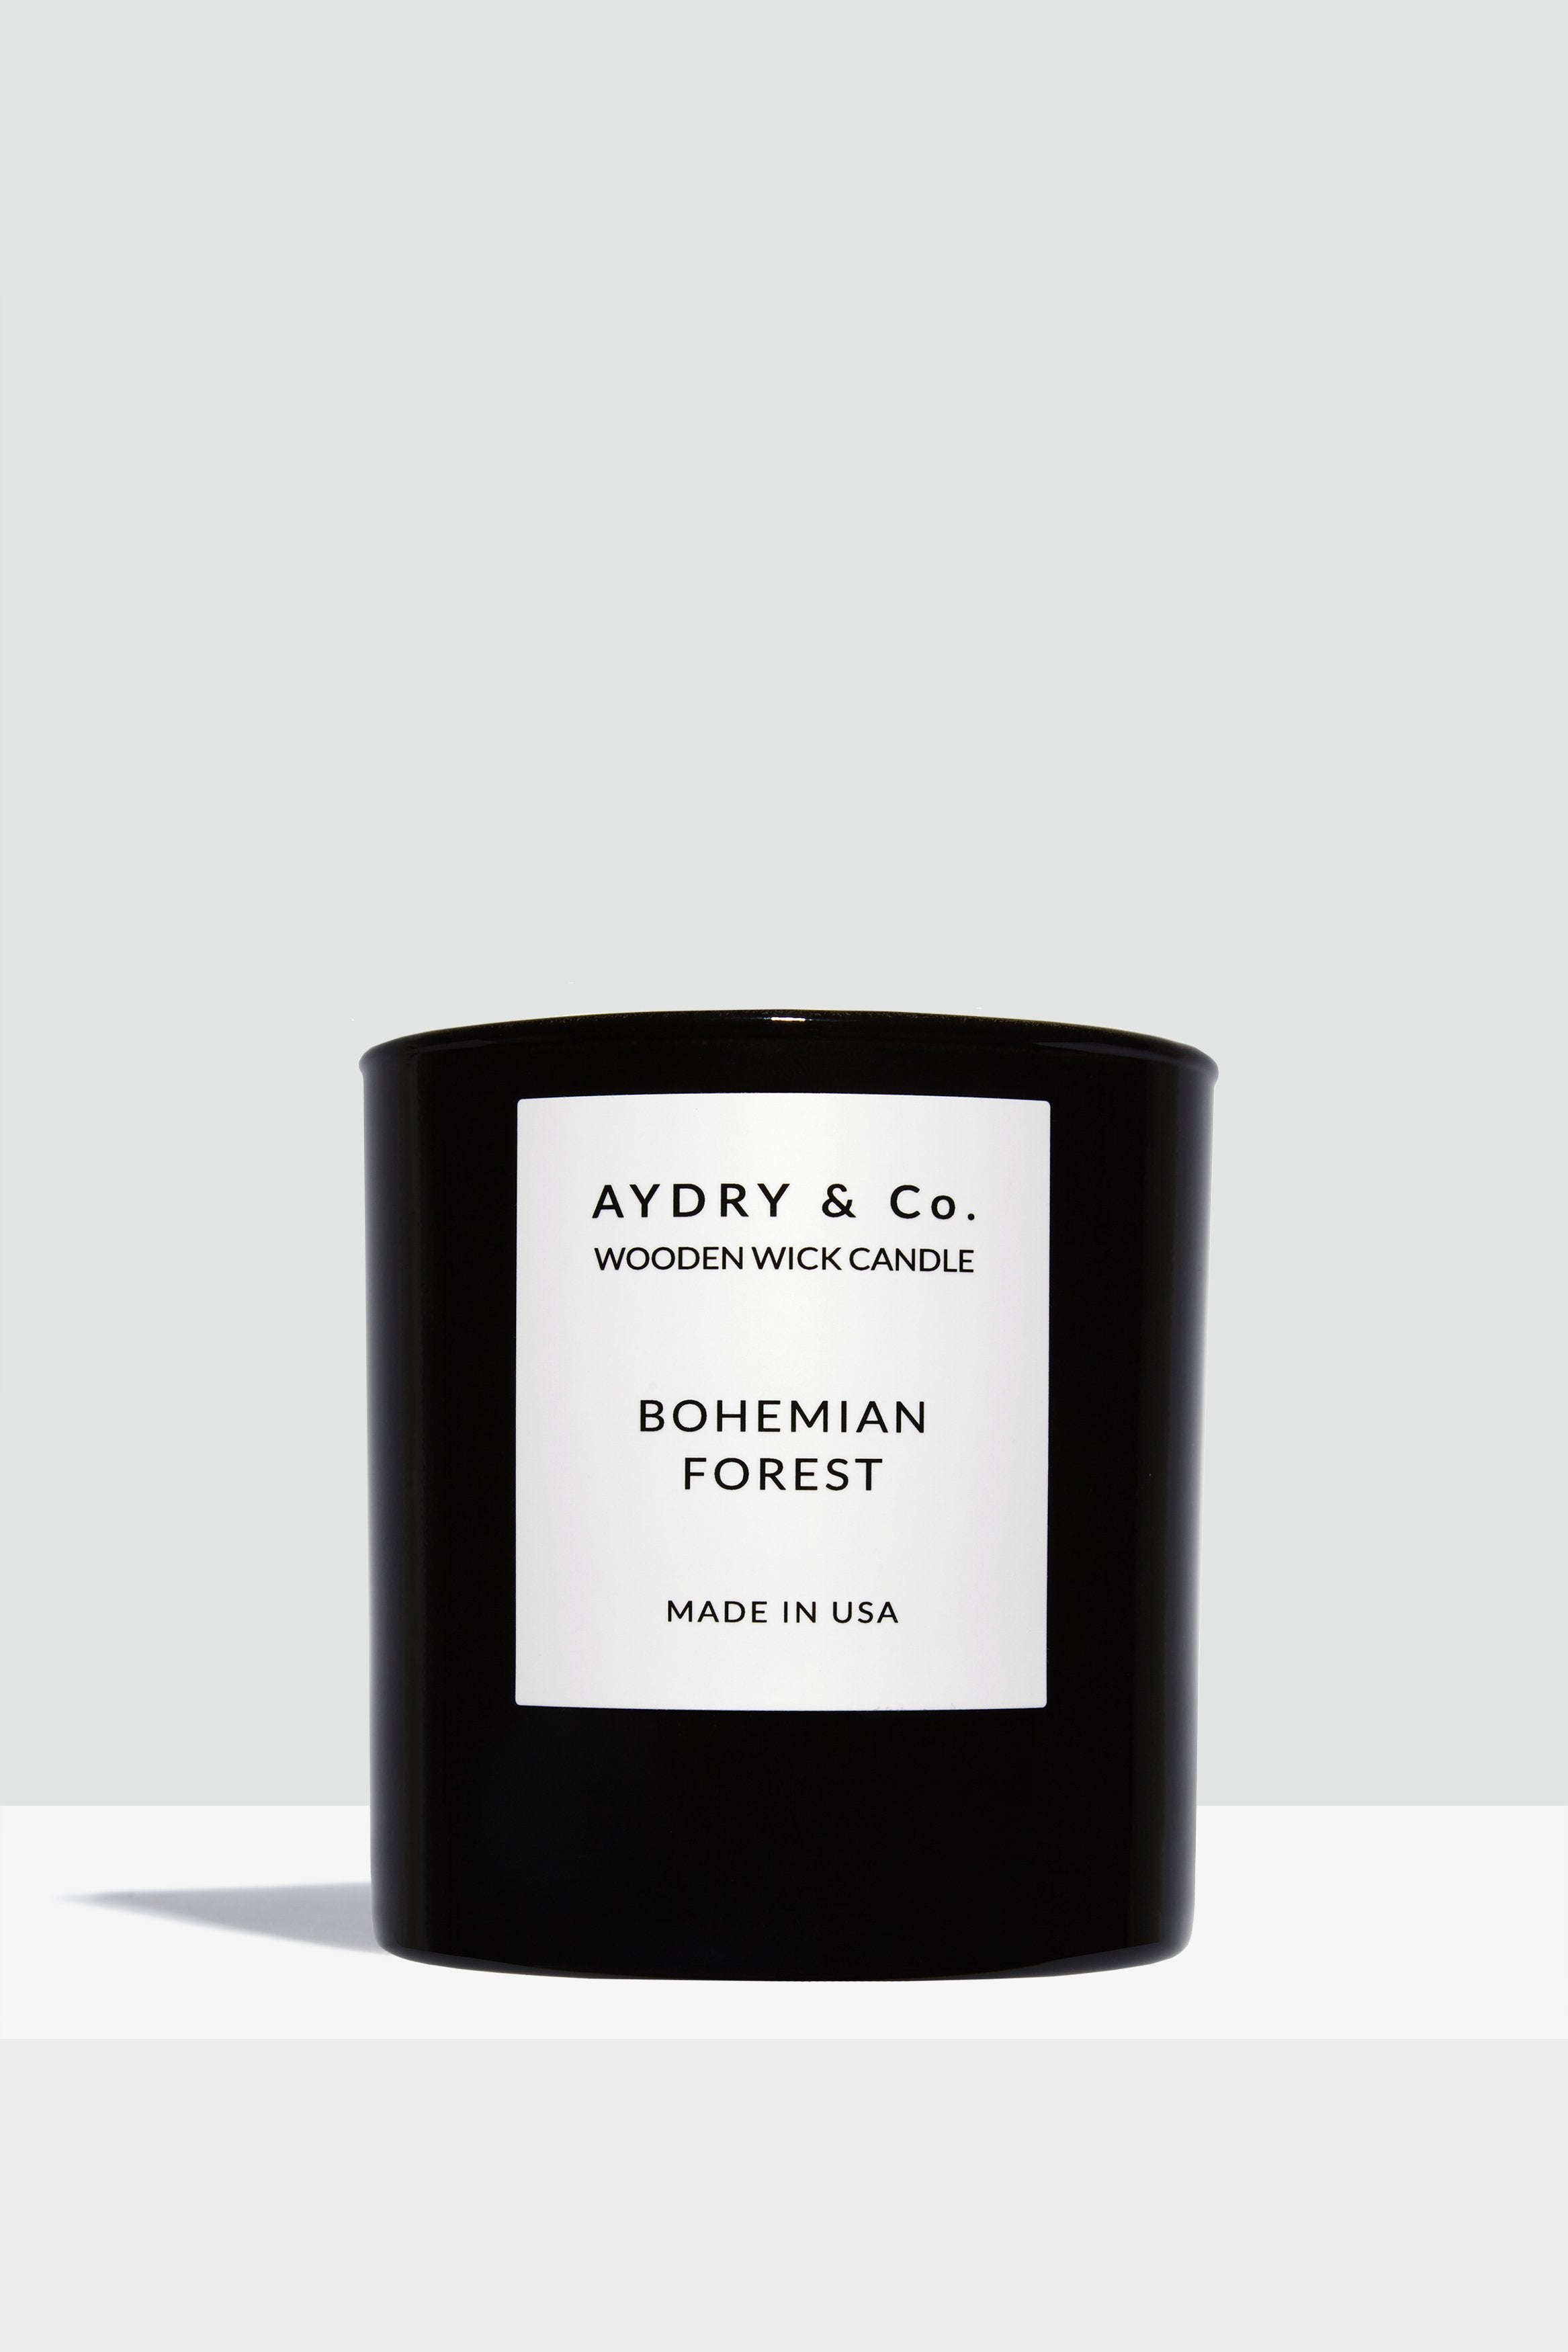 Bohemian Forest Wooden Wick Candle - Hello Addie